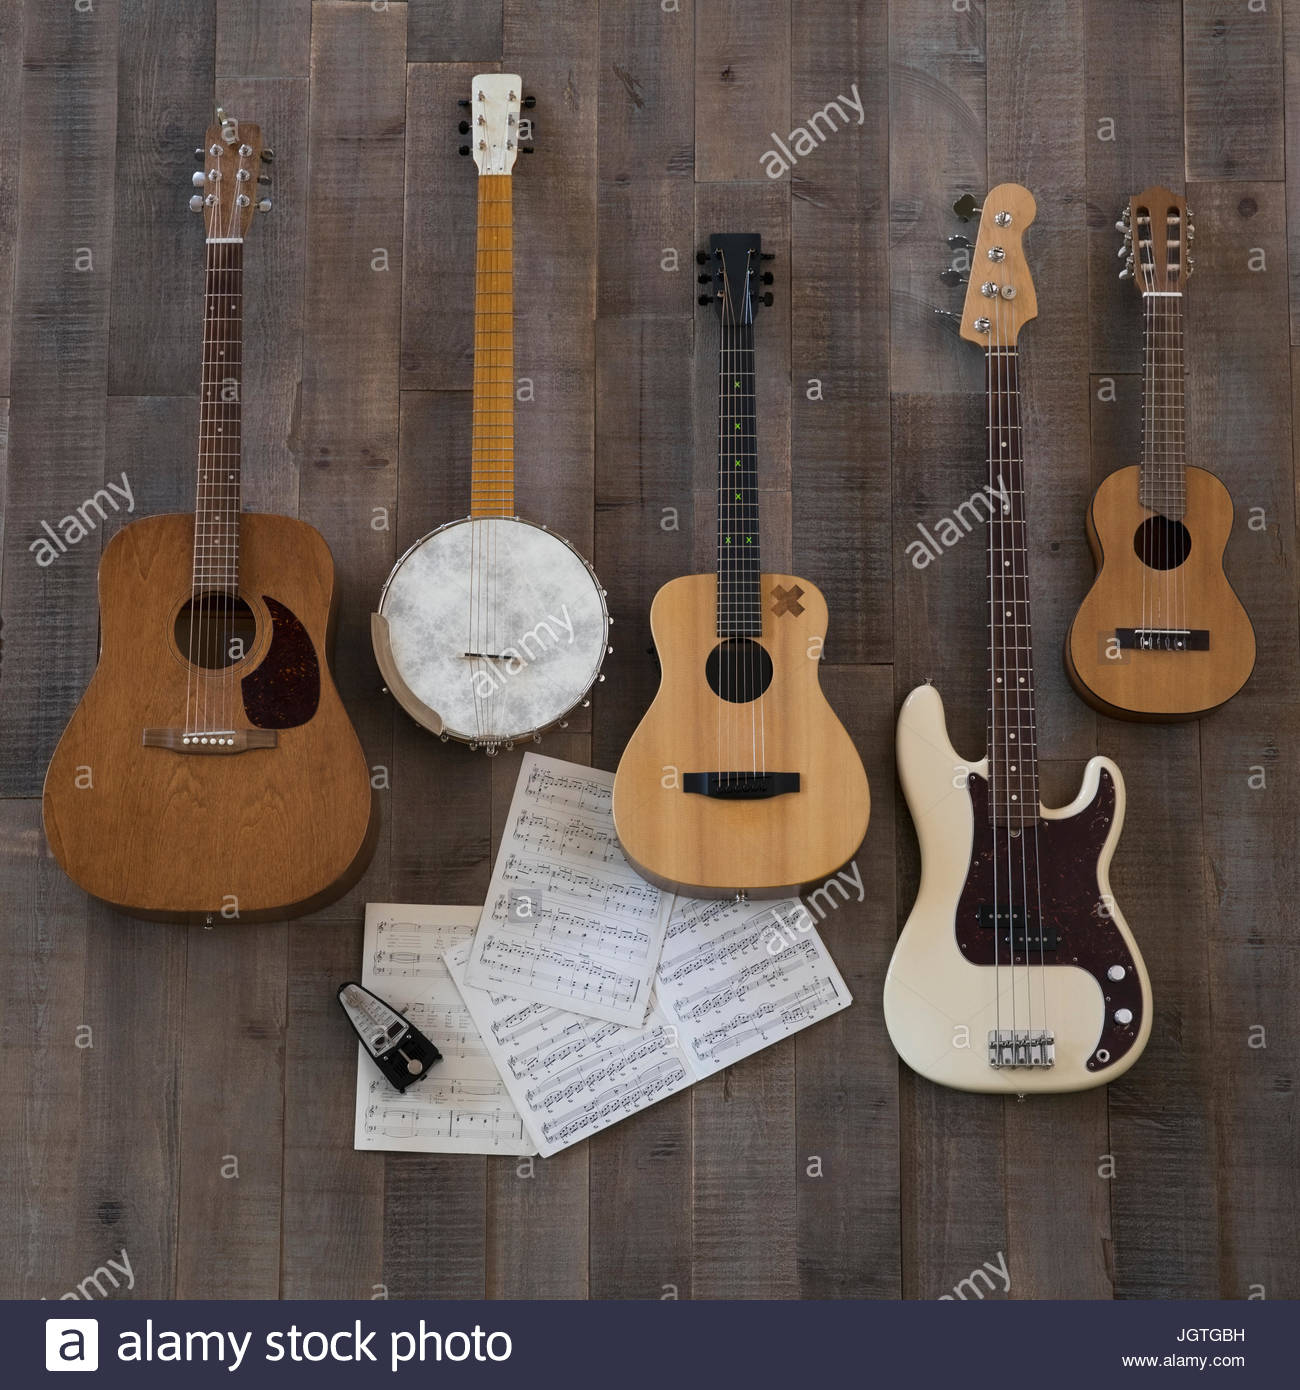 Knolling of guitars, banjo and ukulele on sheet music - Stock Image